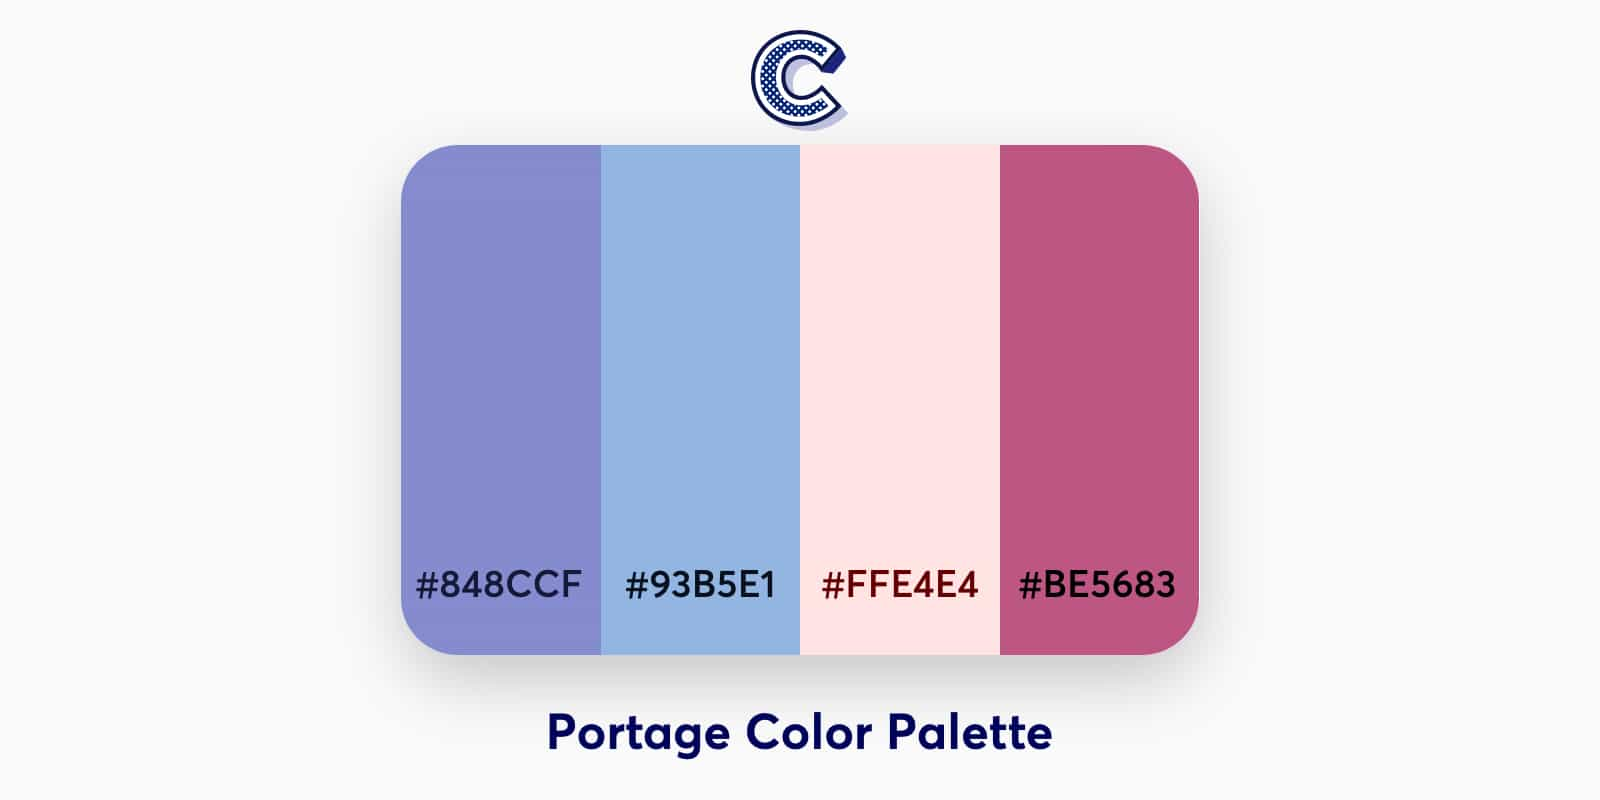 the featured image of portage color palette